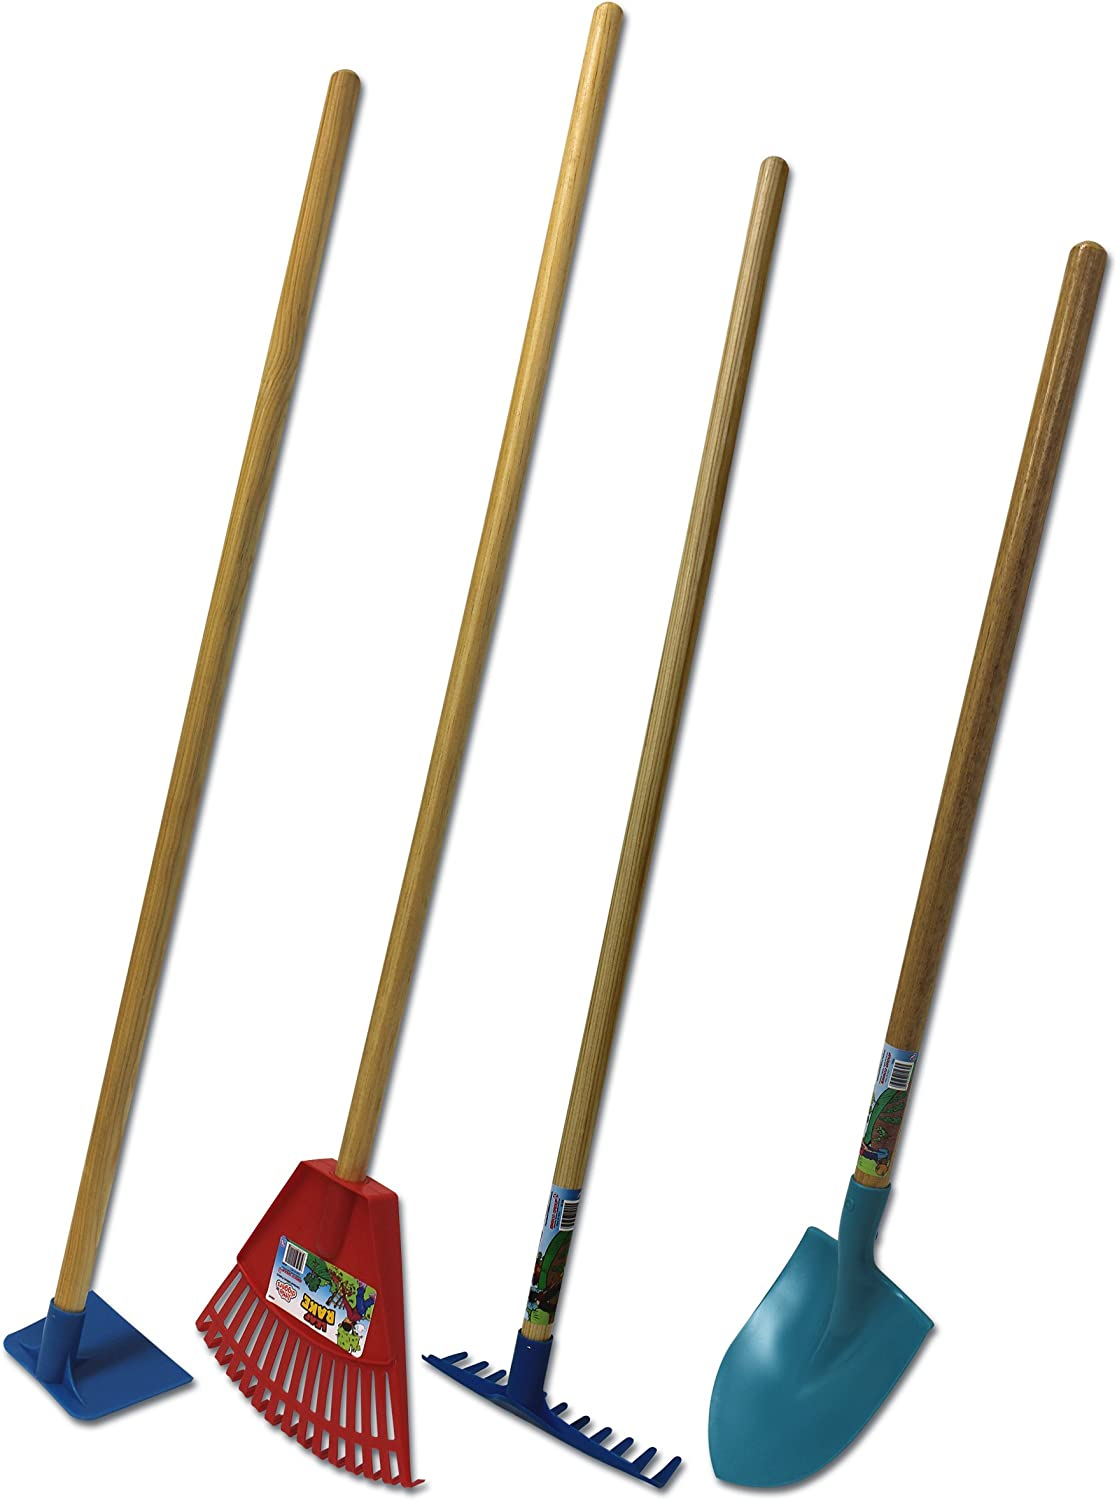 Emsco Group Little Diggers Kids Garden Tool Set Four-Piece Set Child Safe Tools Garden with Your Kids